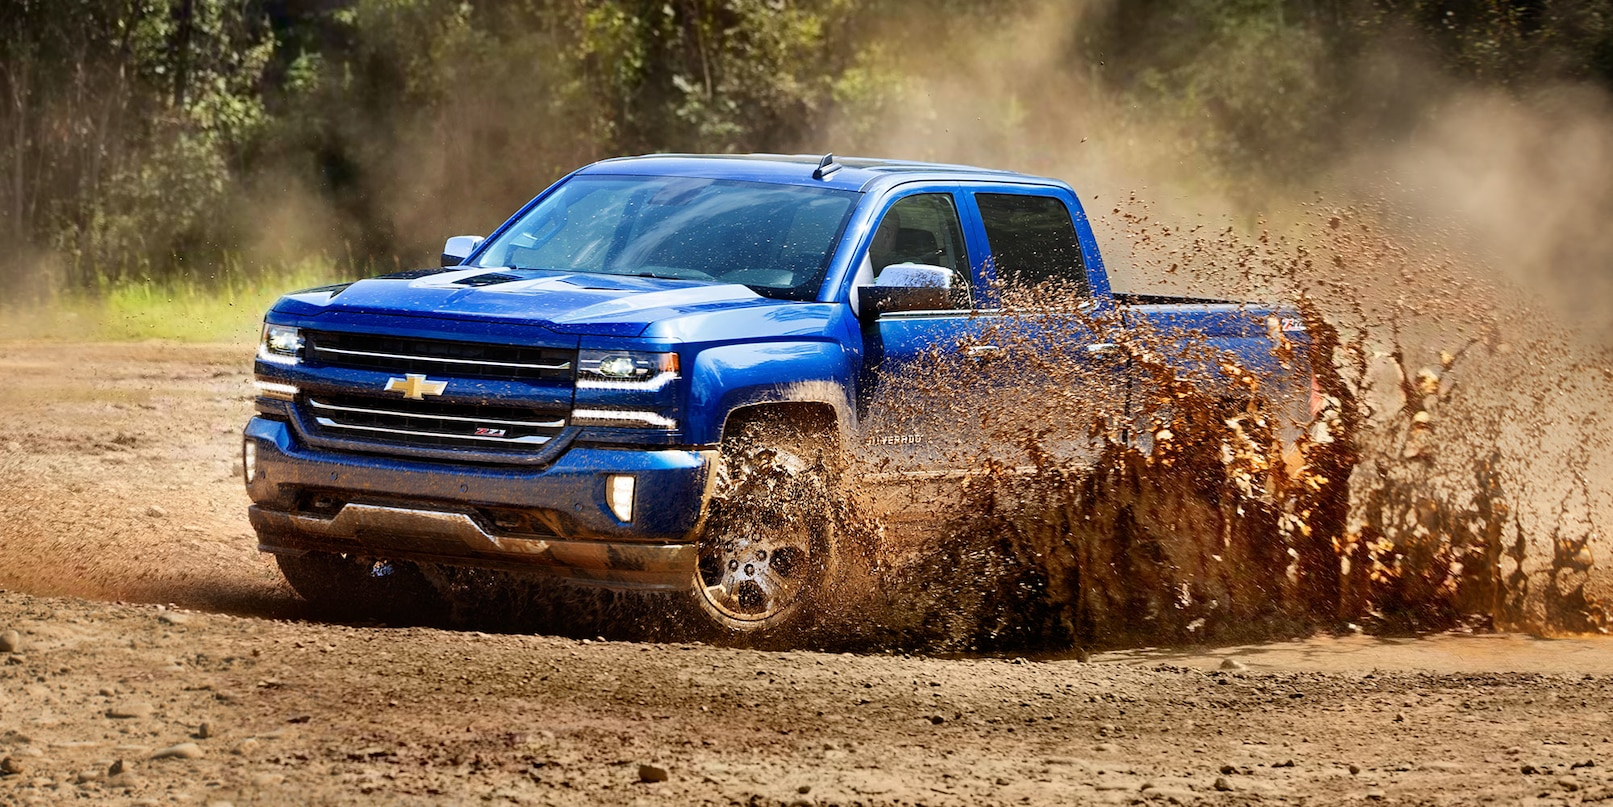 2018 Chevrolet Silverado 1500 Overview - The News Wheel